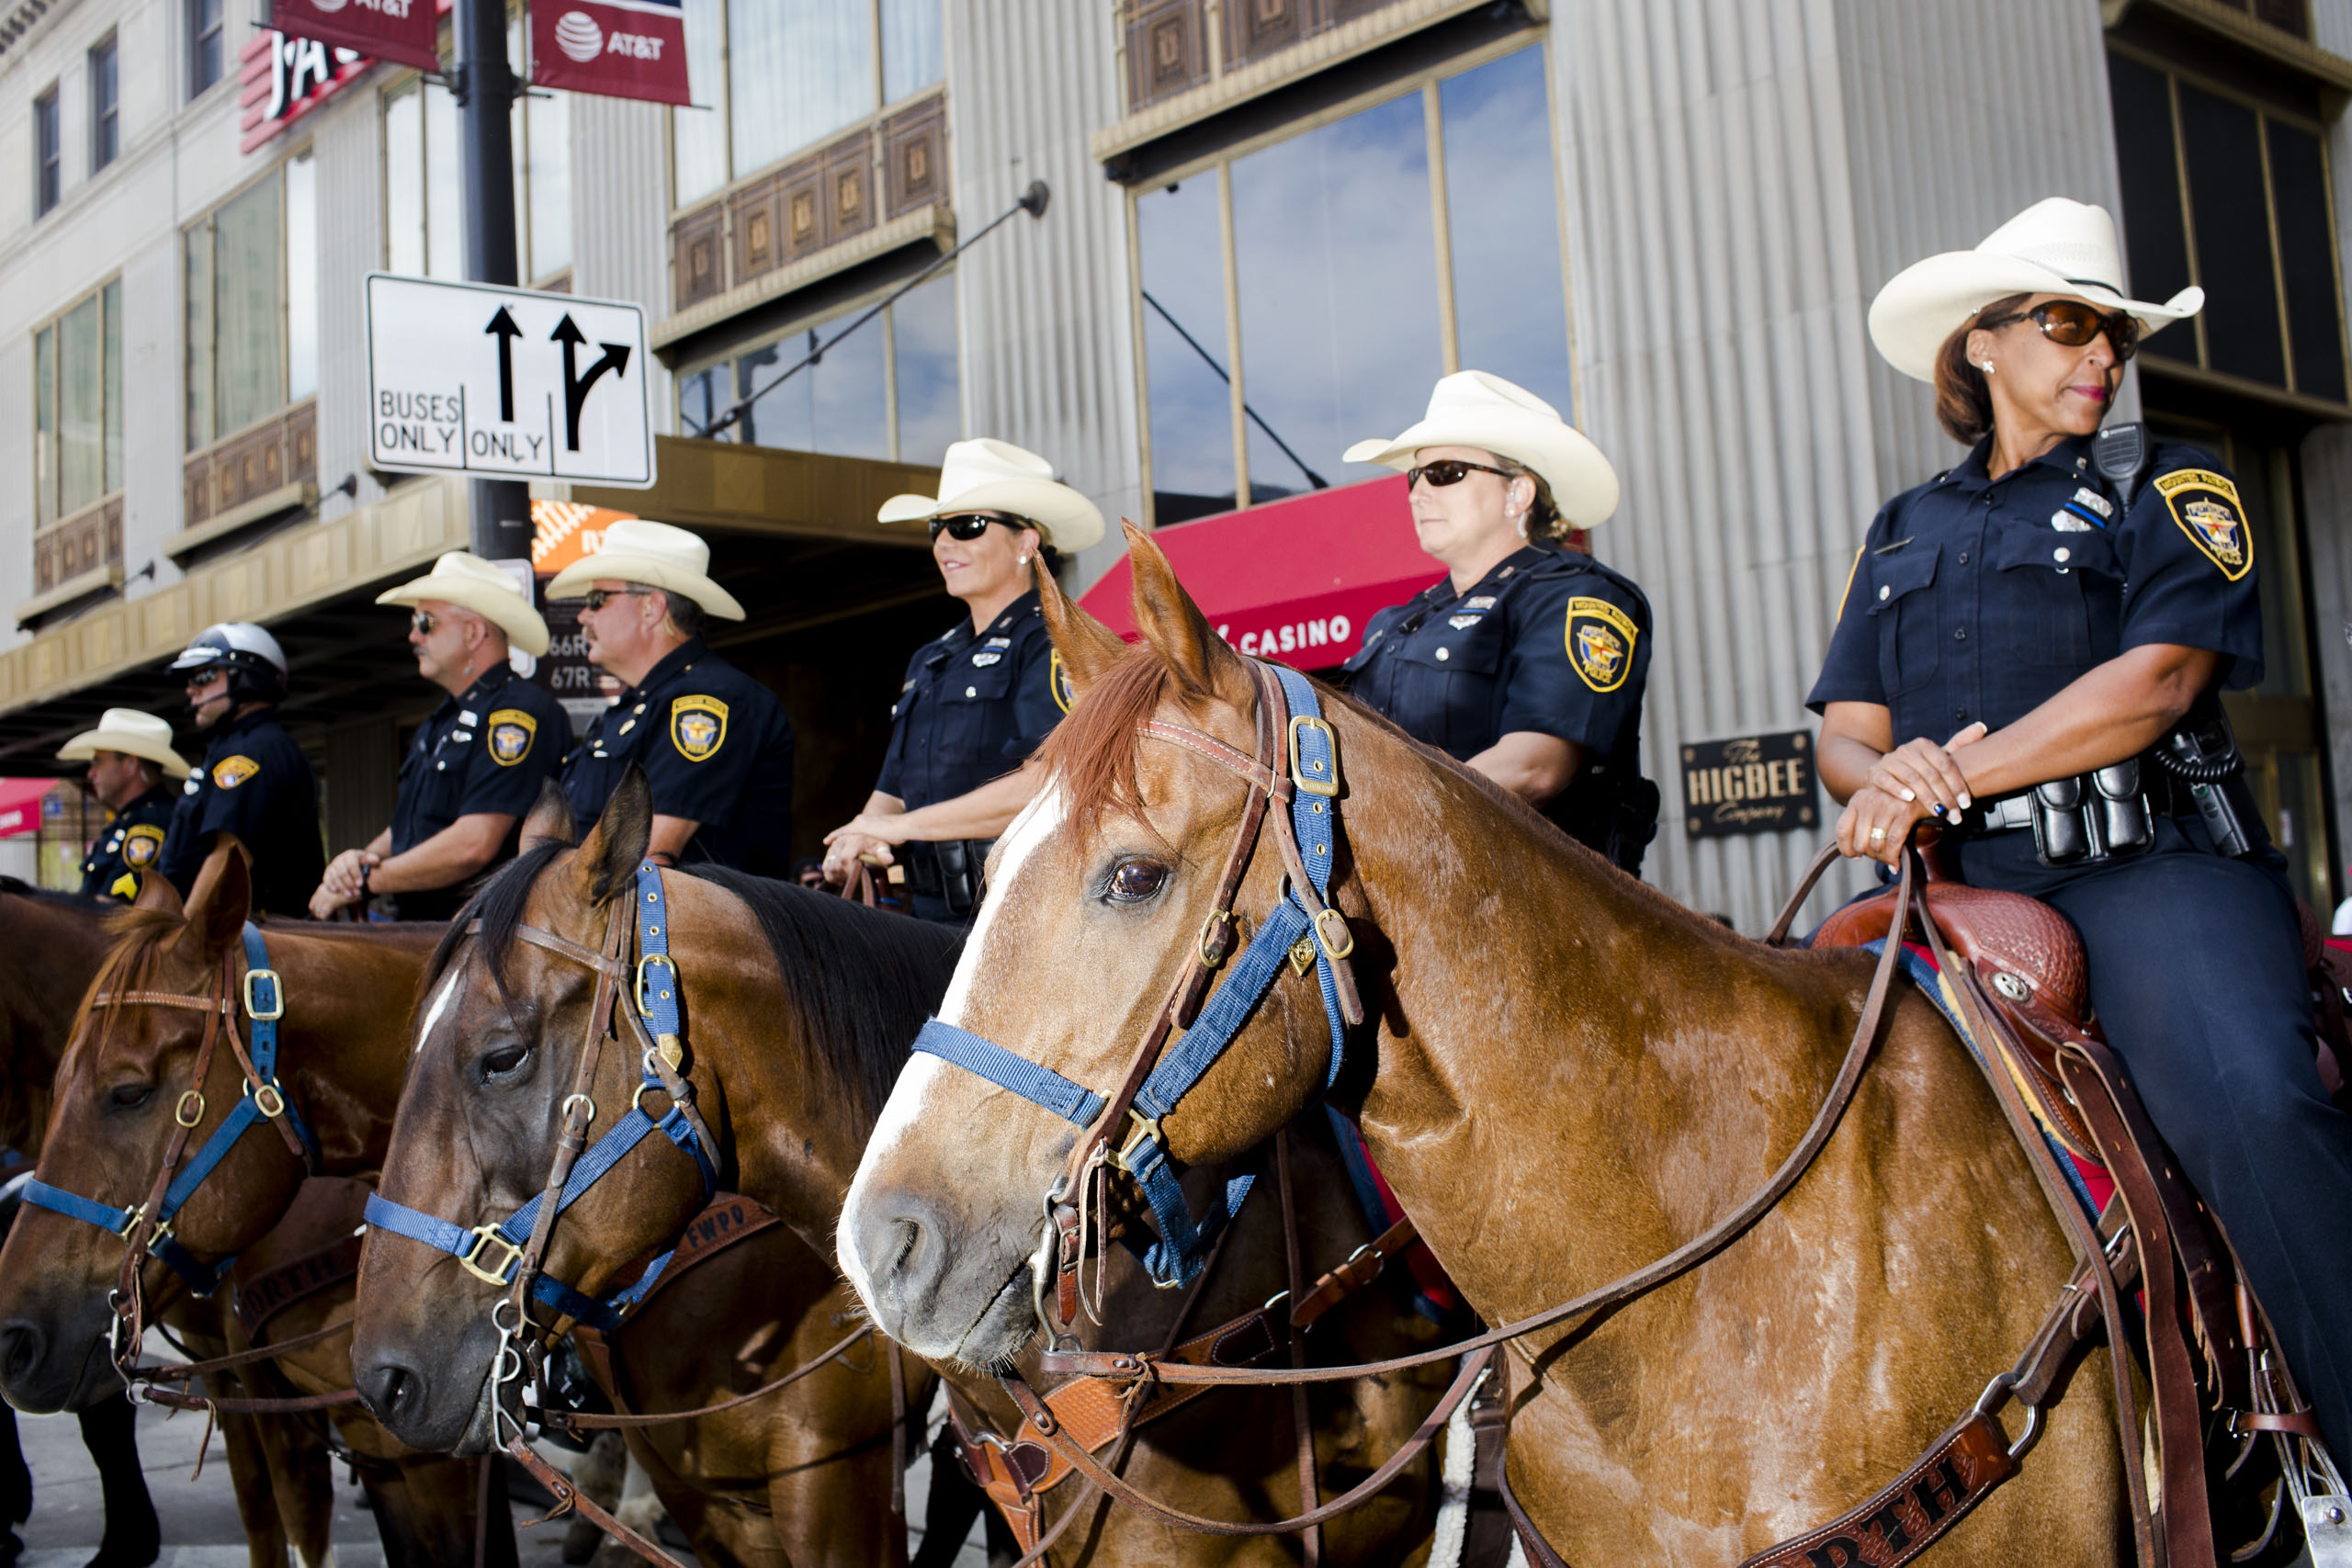 Mounted police from Fort Worth, Texas monitor the 2016 Republican National Convention in Cleveland on Wednesday, July 20, 2016.